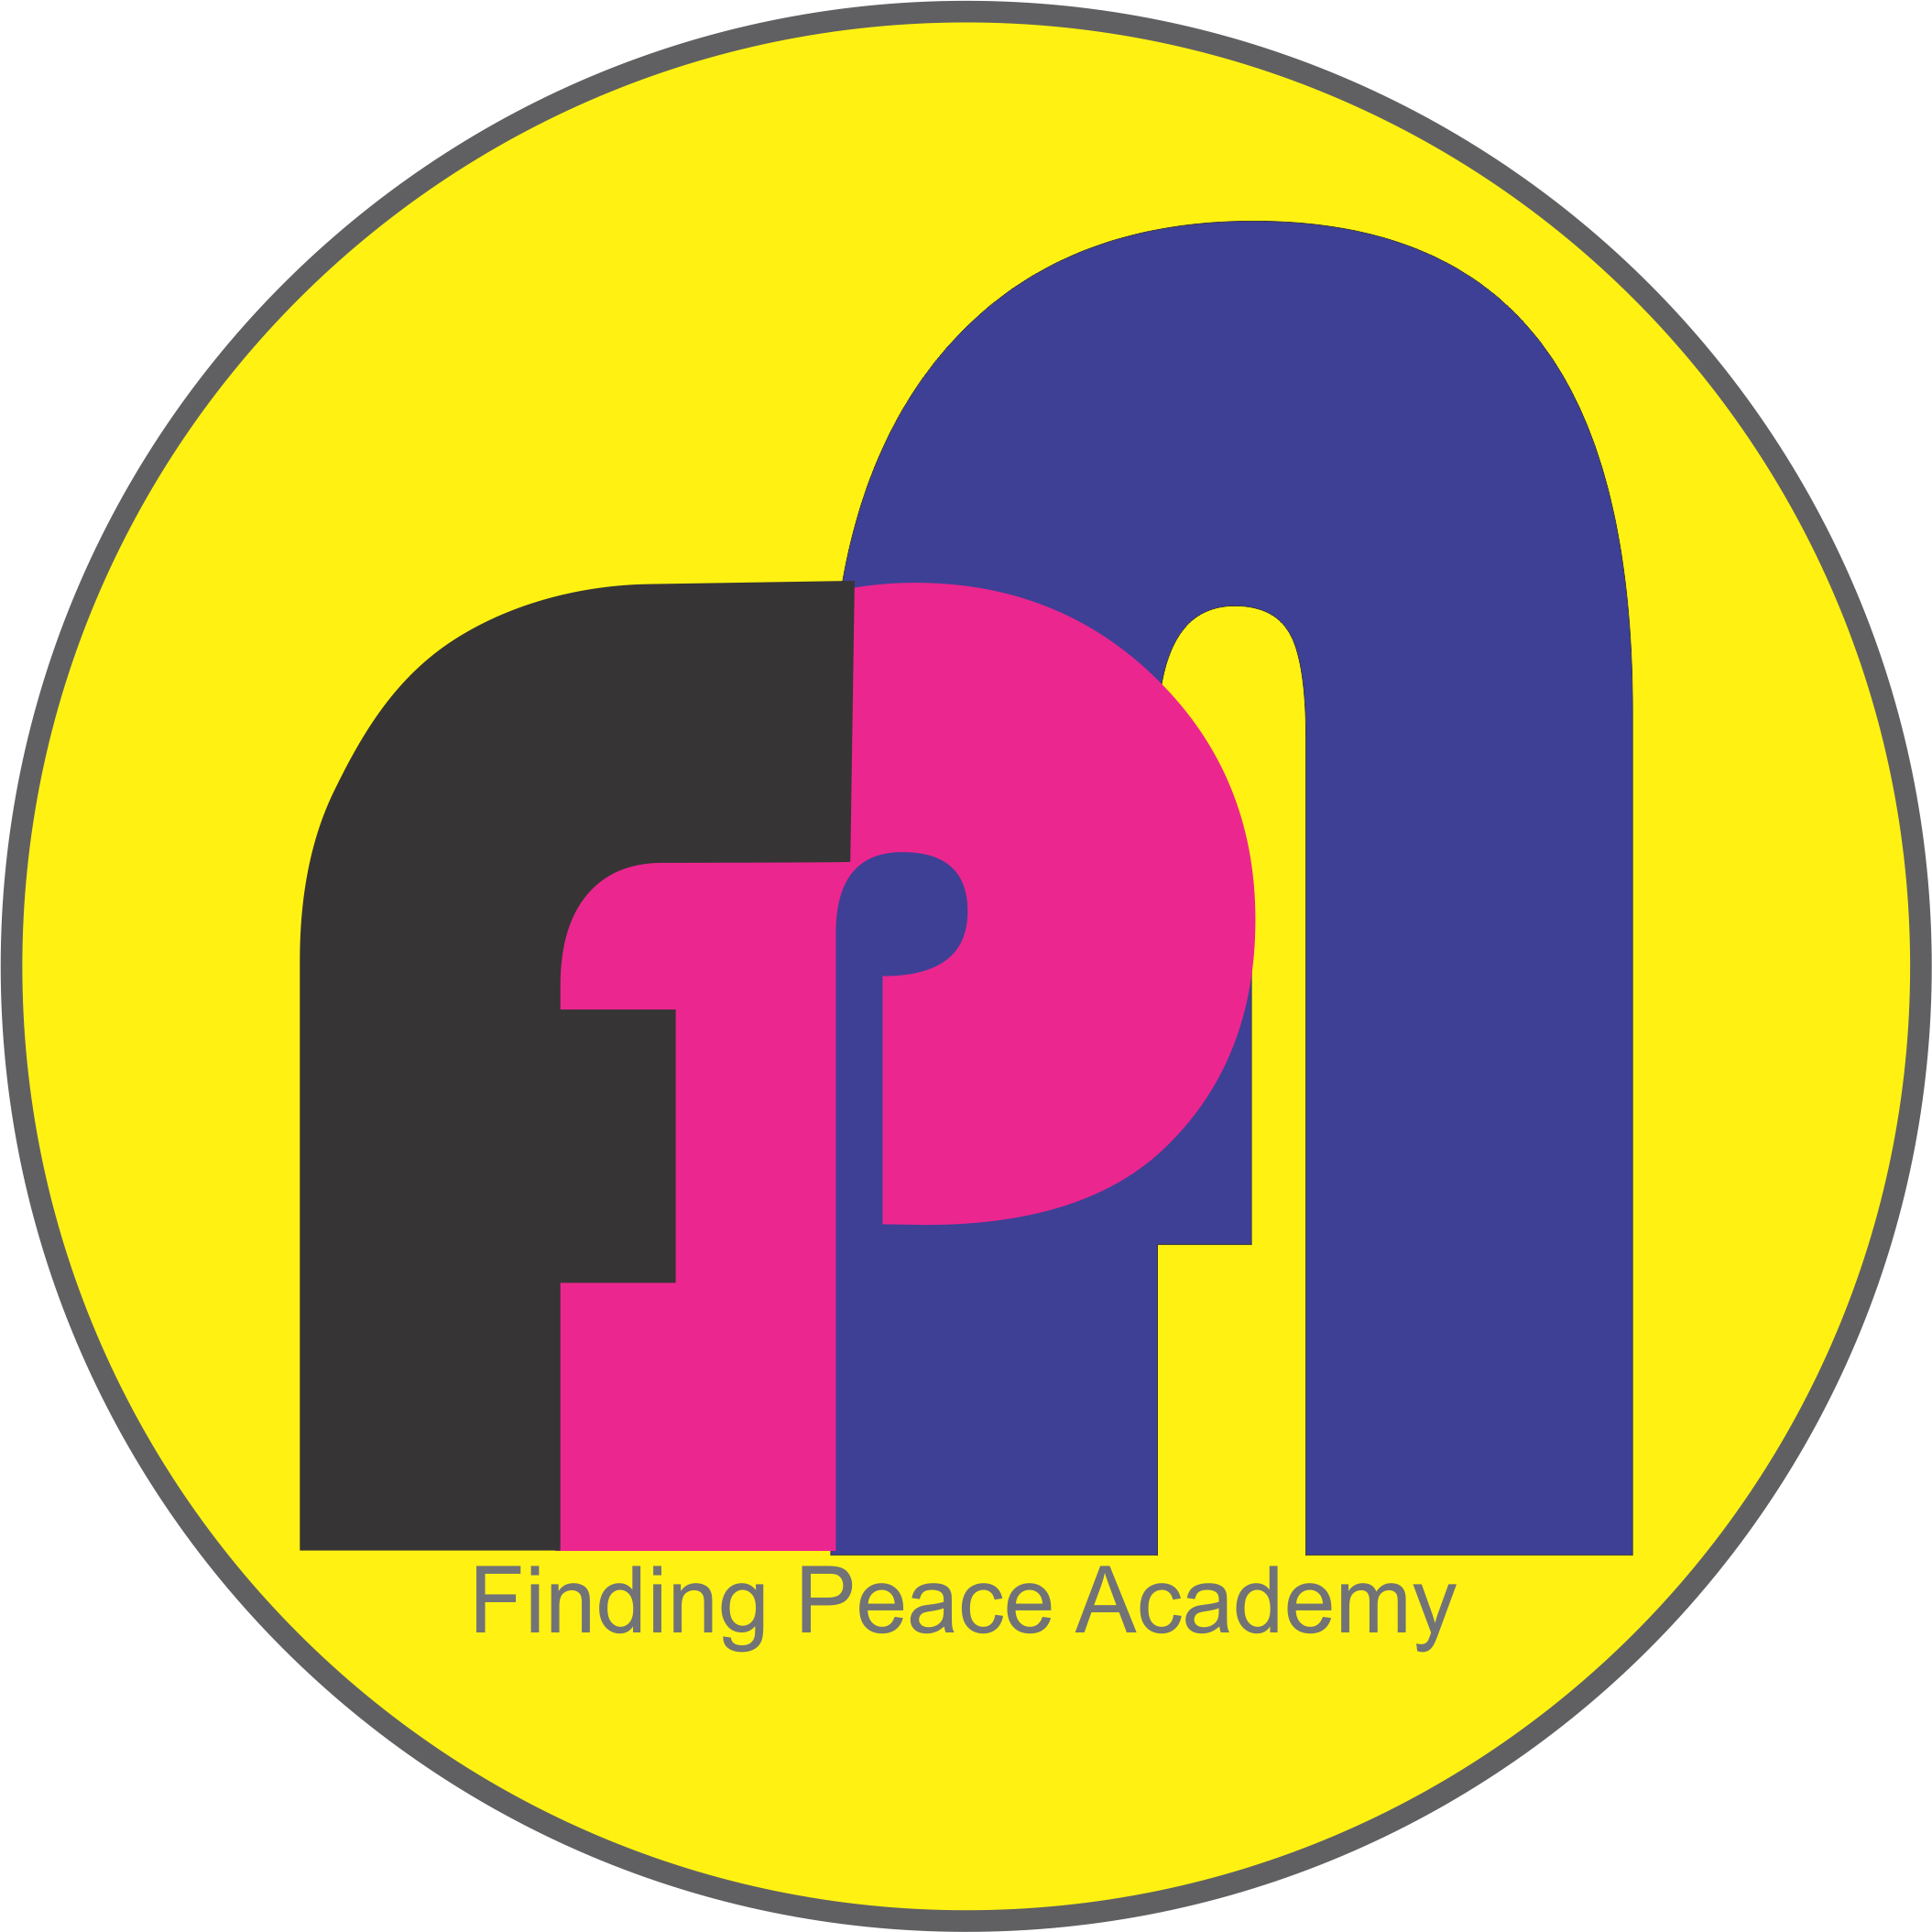 Finding Peace Academy